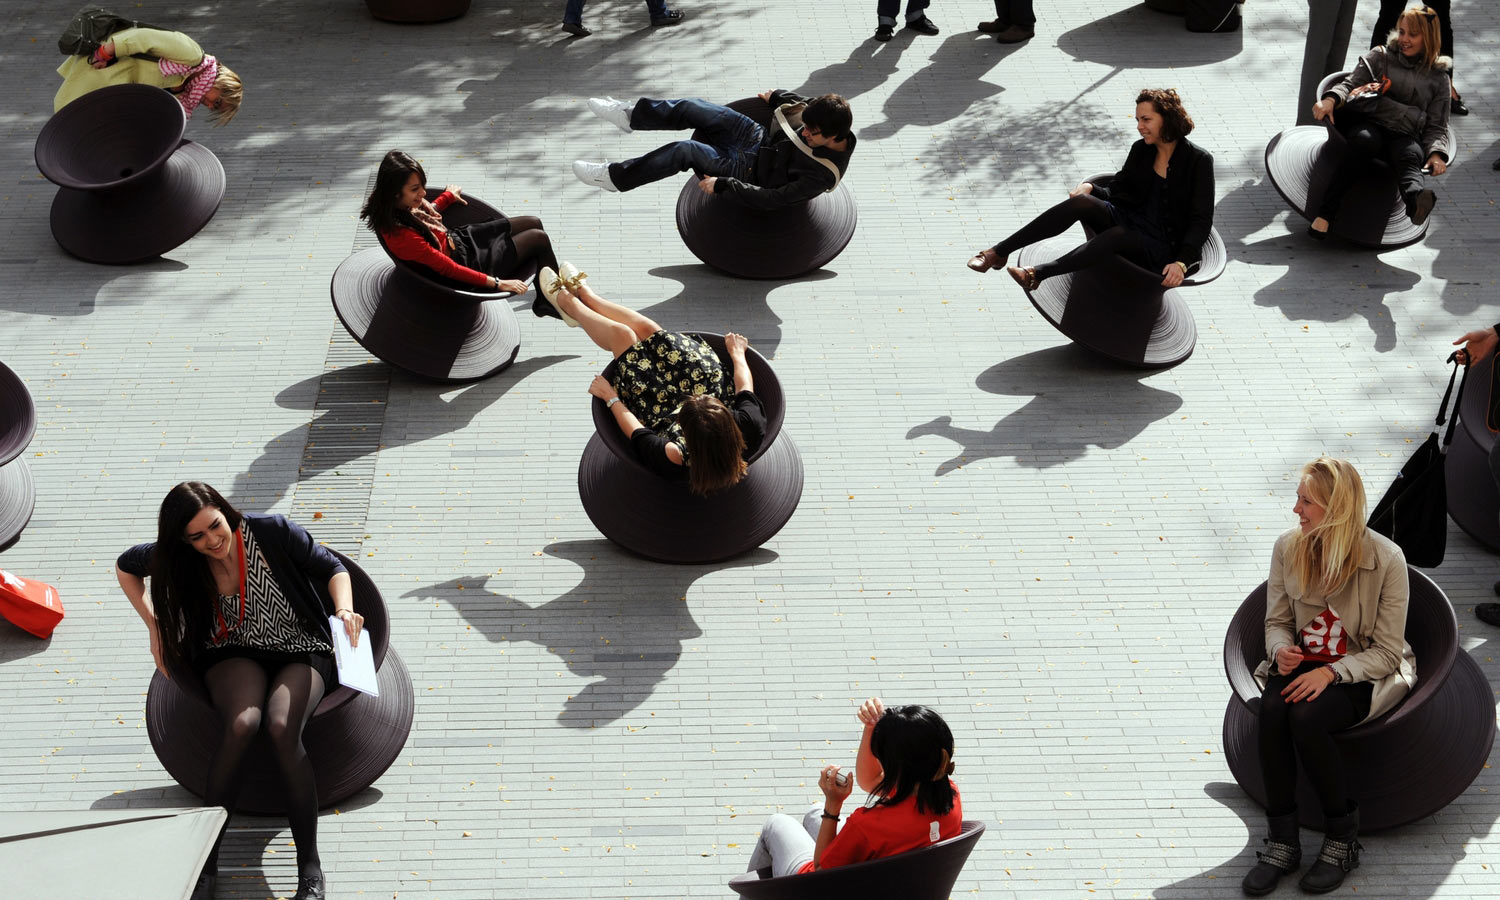 Heatherwick Studio | ideas.ted.com